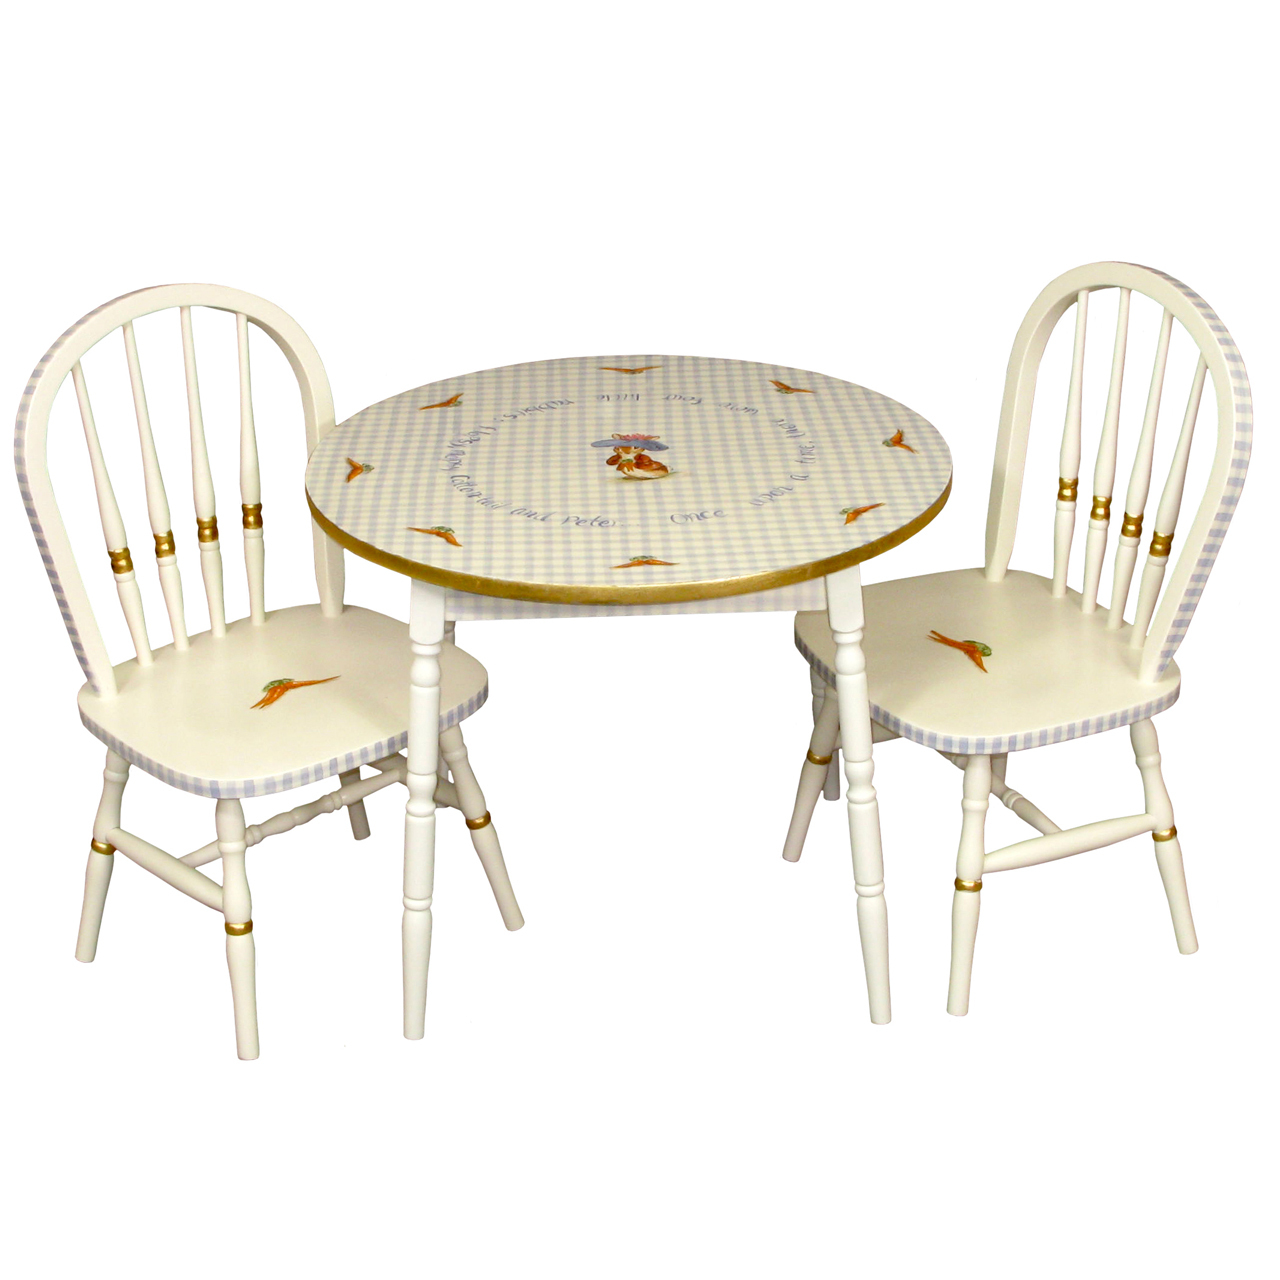 play table and chairs outdoor folding lounge chair round set antico white blue